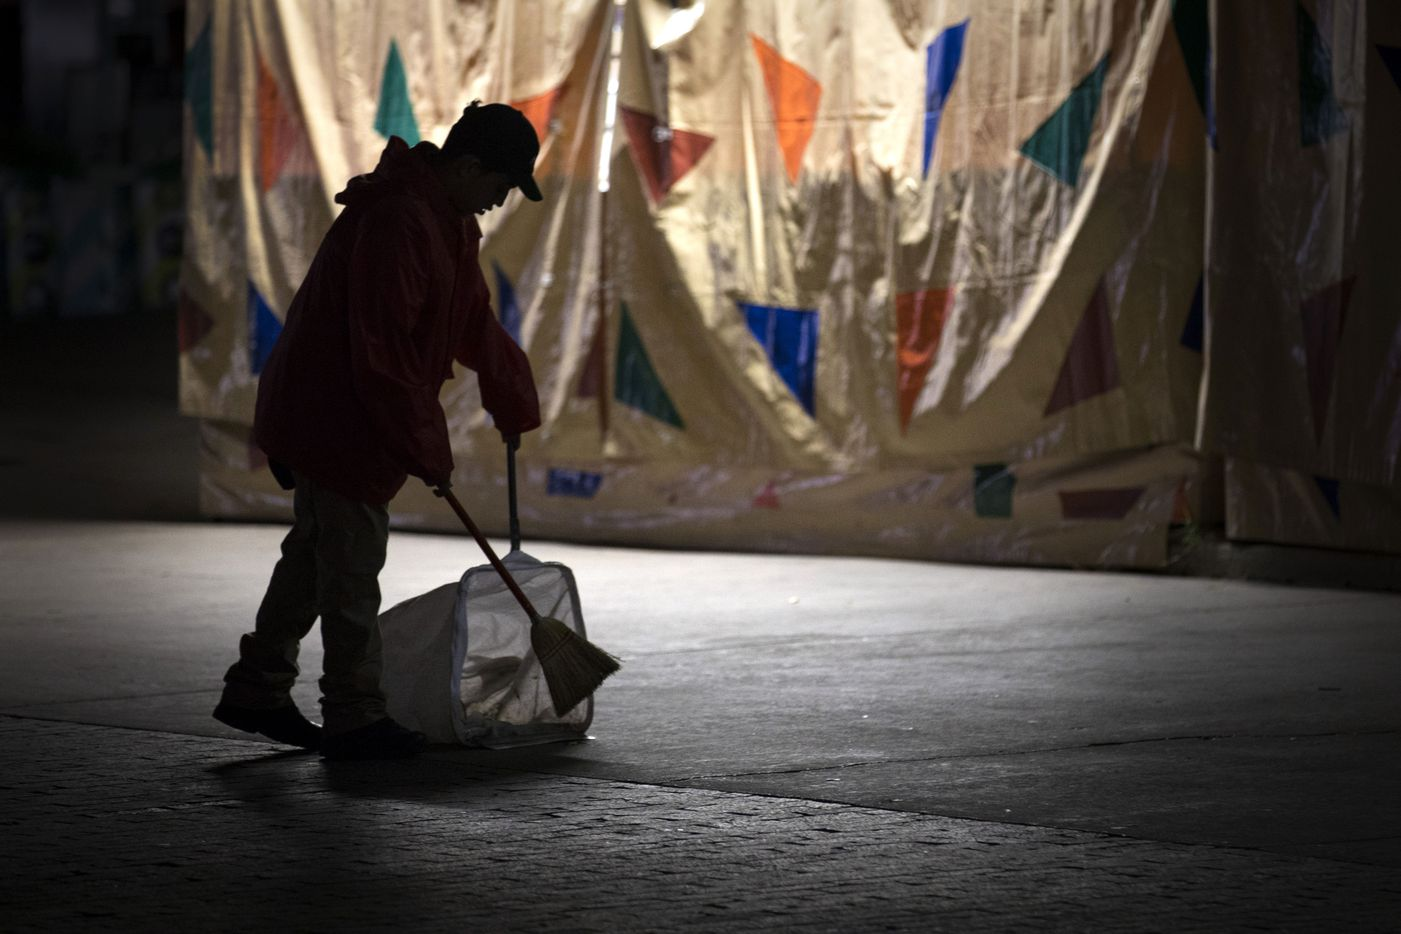 A worker sweeps up along Grand Avenue at the State Fair of Texas in the early morning hours.